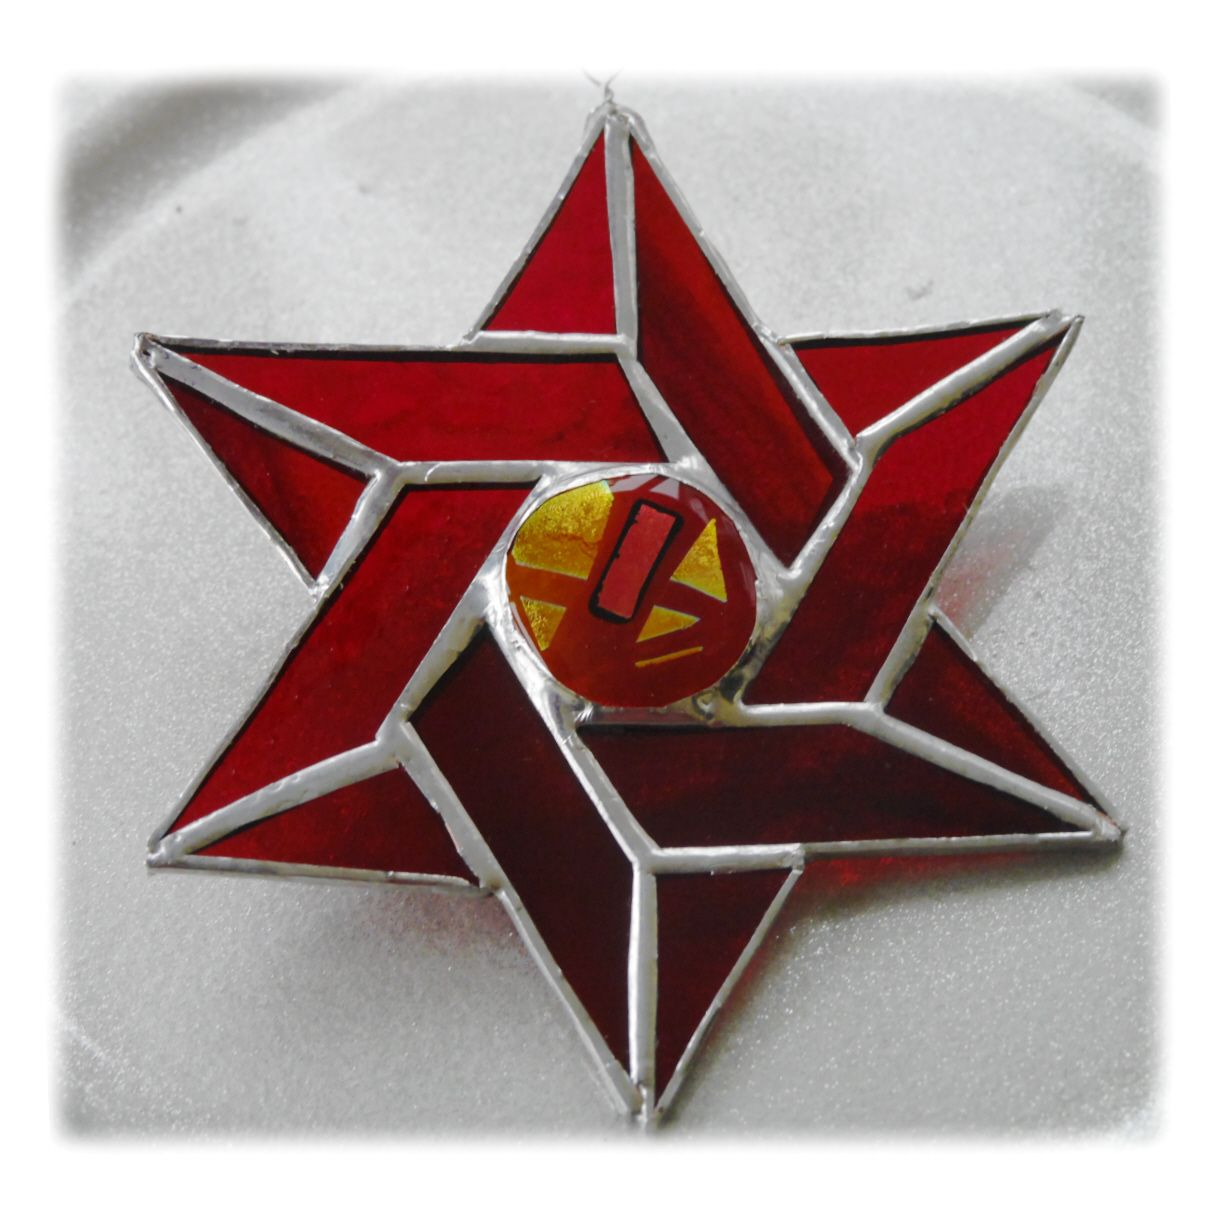 RED Star of David 020 Red #1810 FREE 16.00